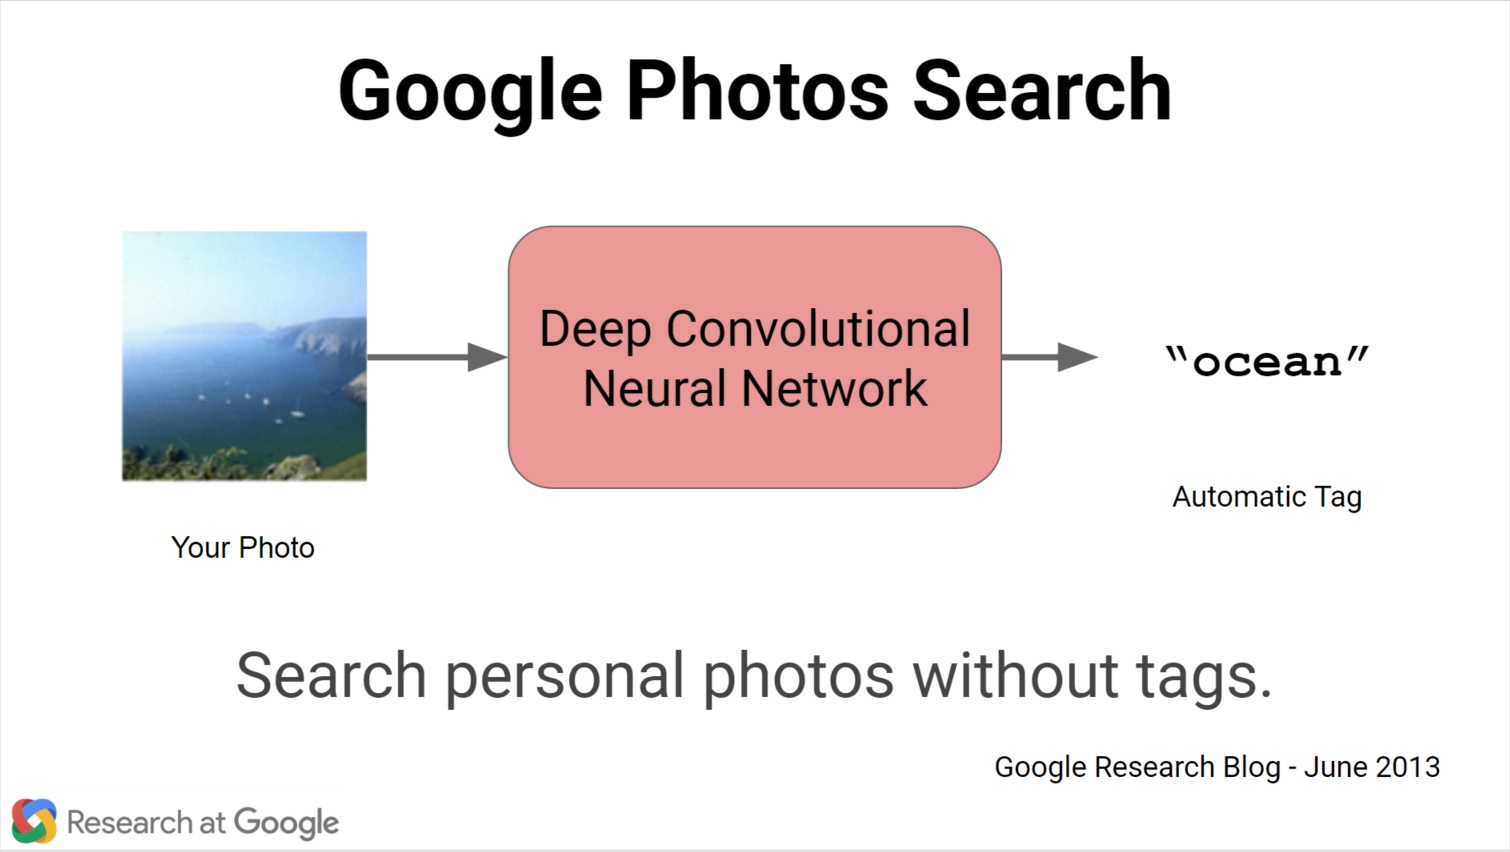 Google themes over the years - When You Ve Taken Tens Of Thousands Of Photos Over The Years Across Various Devices It Can Be Difficult And Sometimes Bordering On Impossible To Find